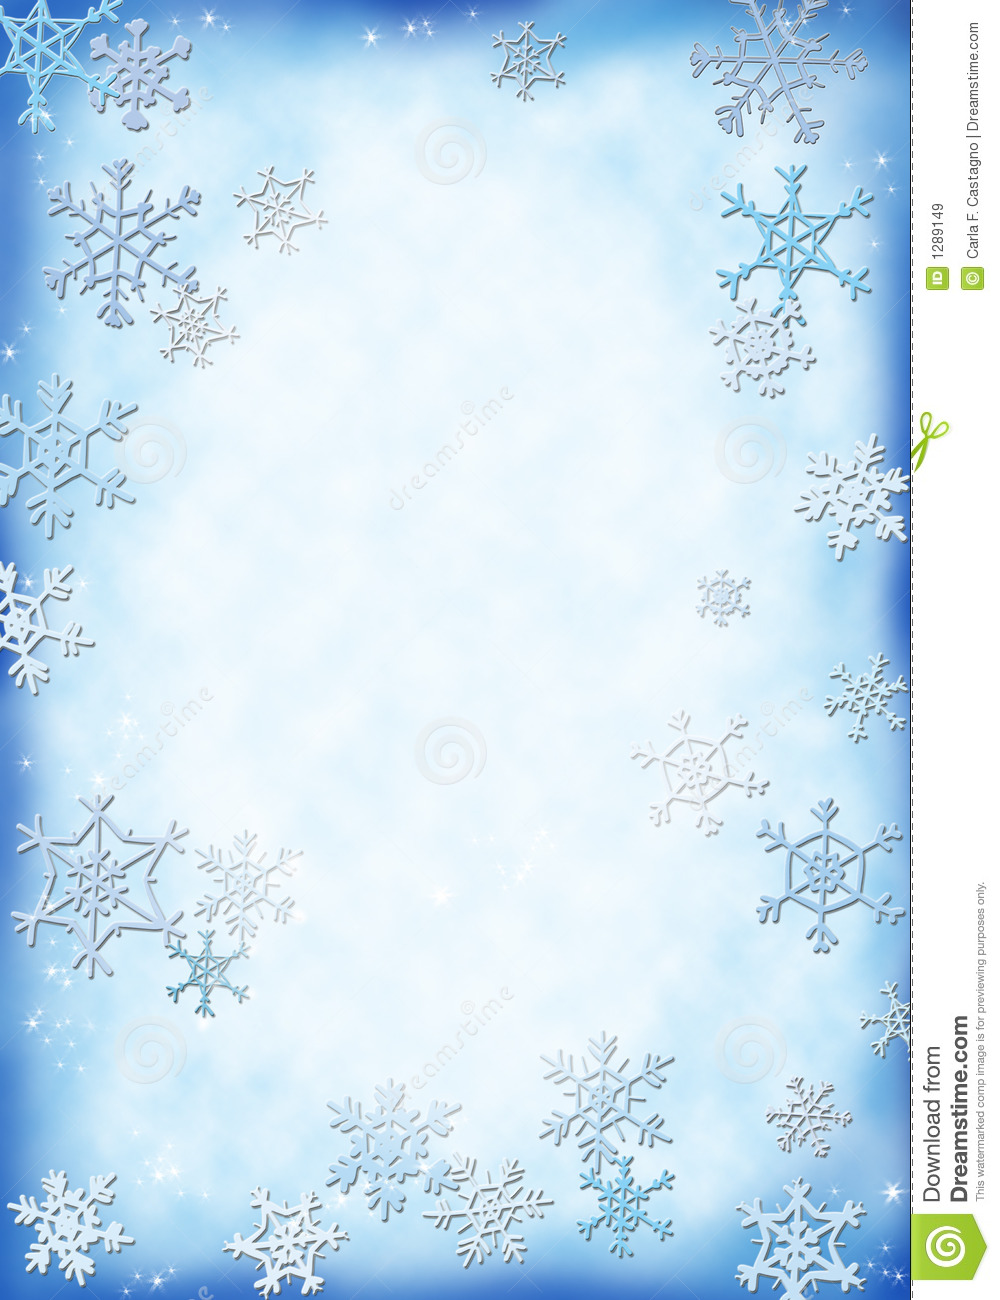 Snow Background Royalty Free Stock Images - Image: 1289149